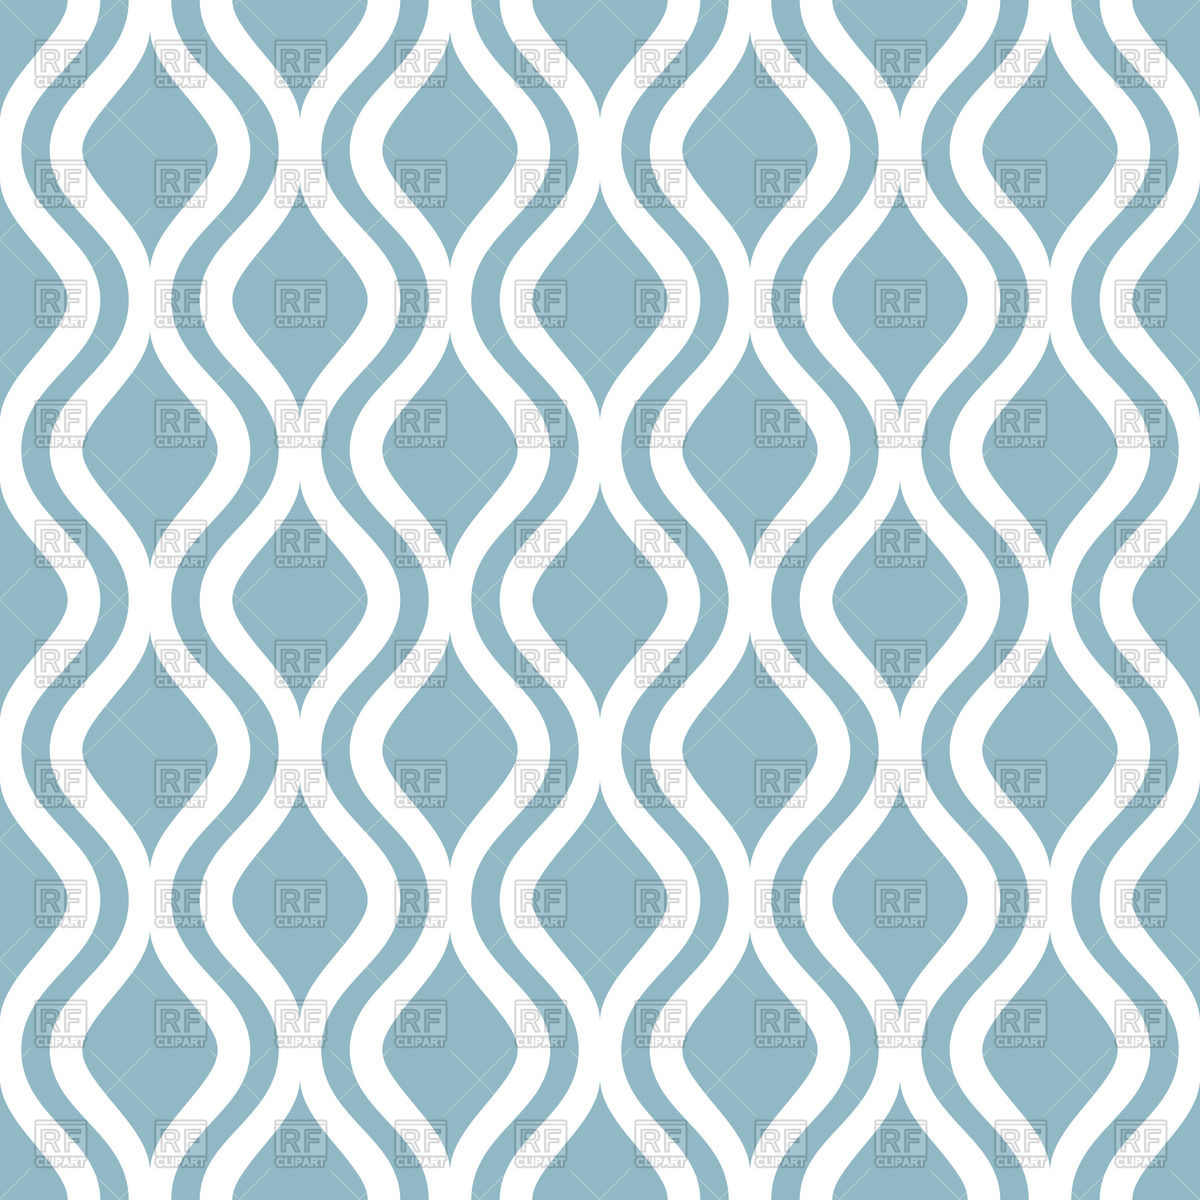 Seamless simple wallpaper with blue vertical wavy lines Vector.